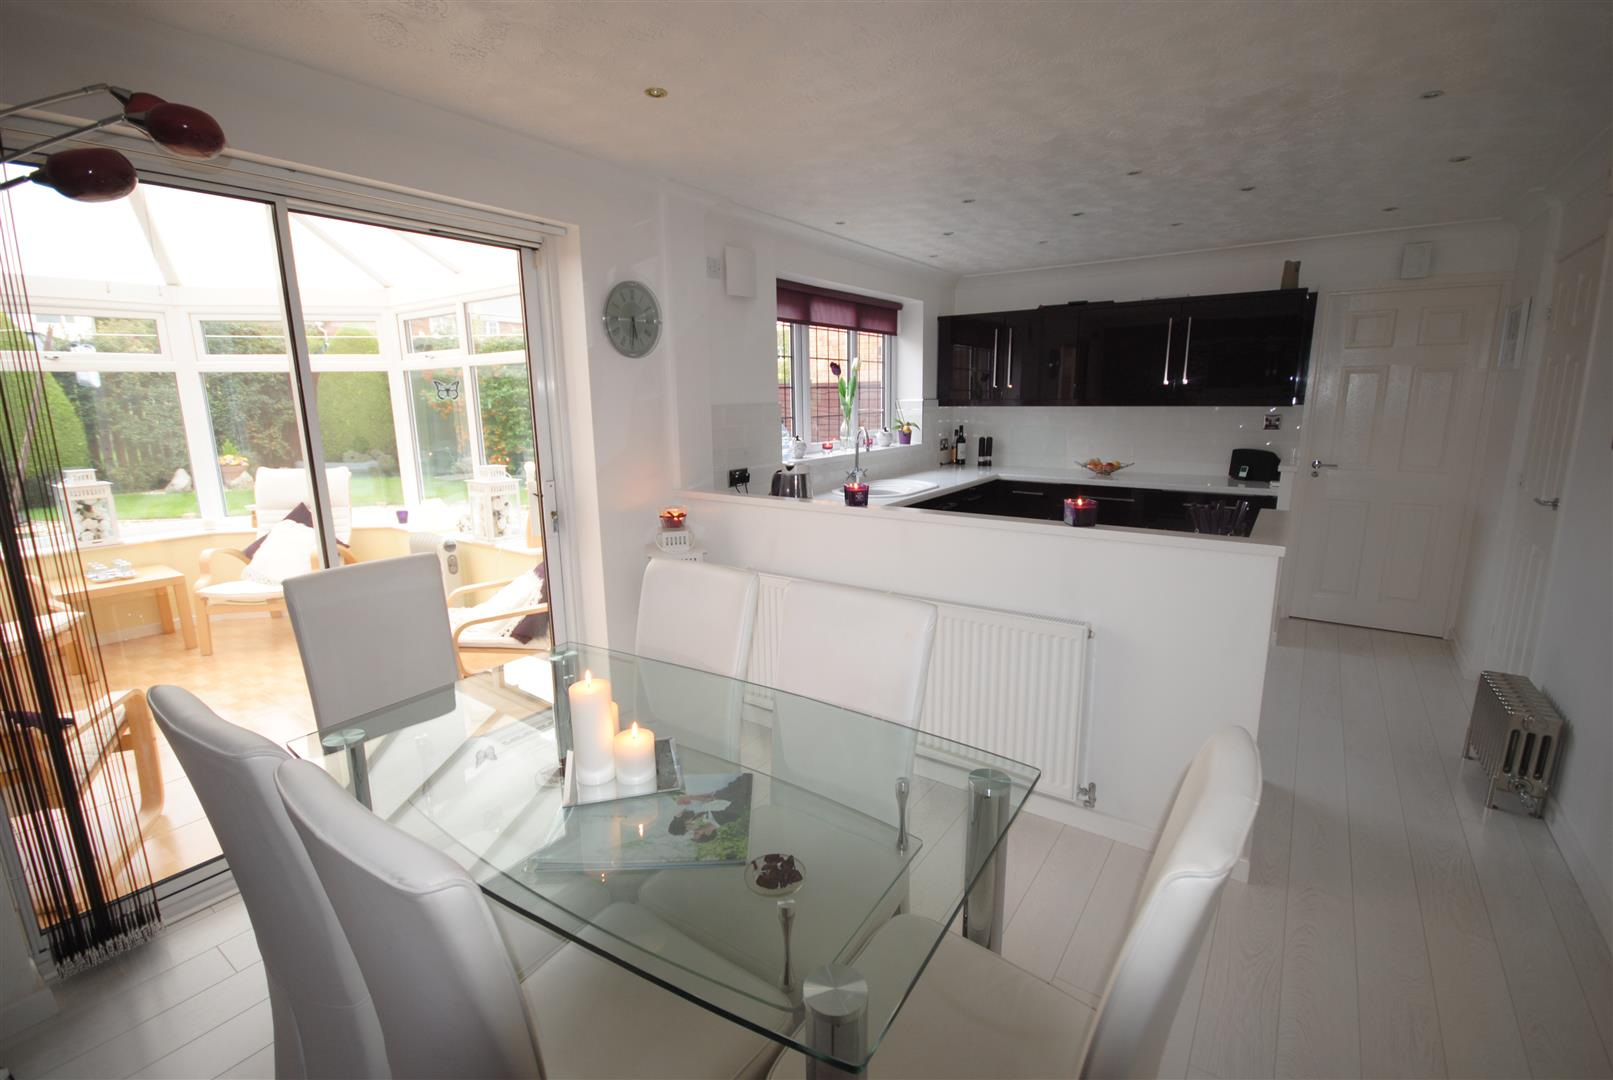 4 Bedrooms Detached House for sale in Holly Heath Drive, Whitley, Wigan.